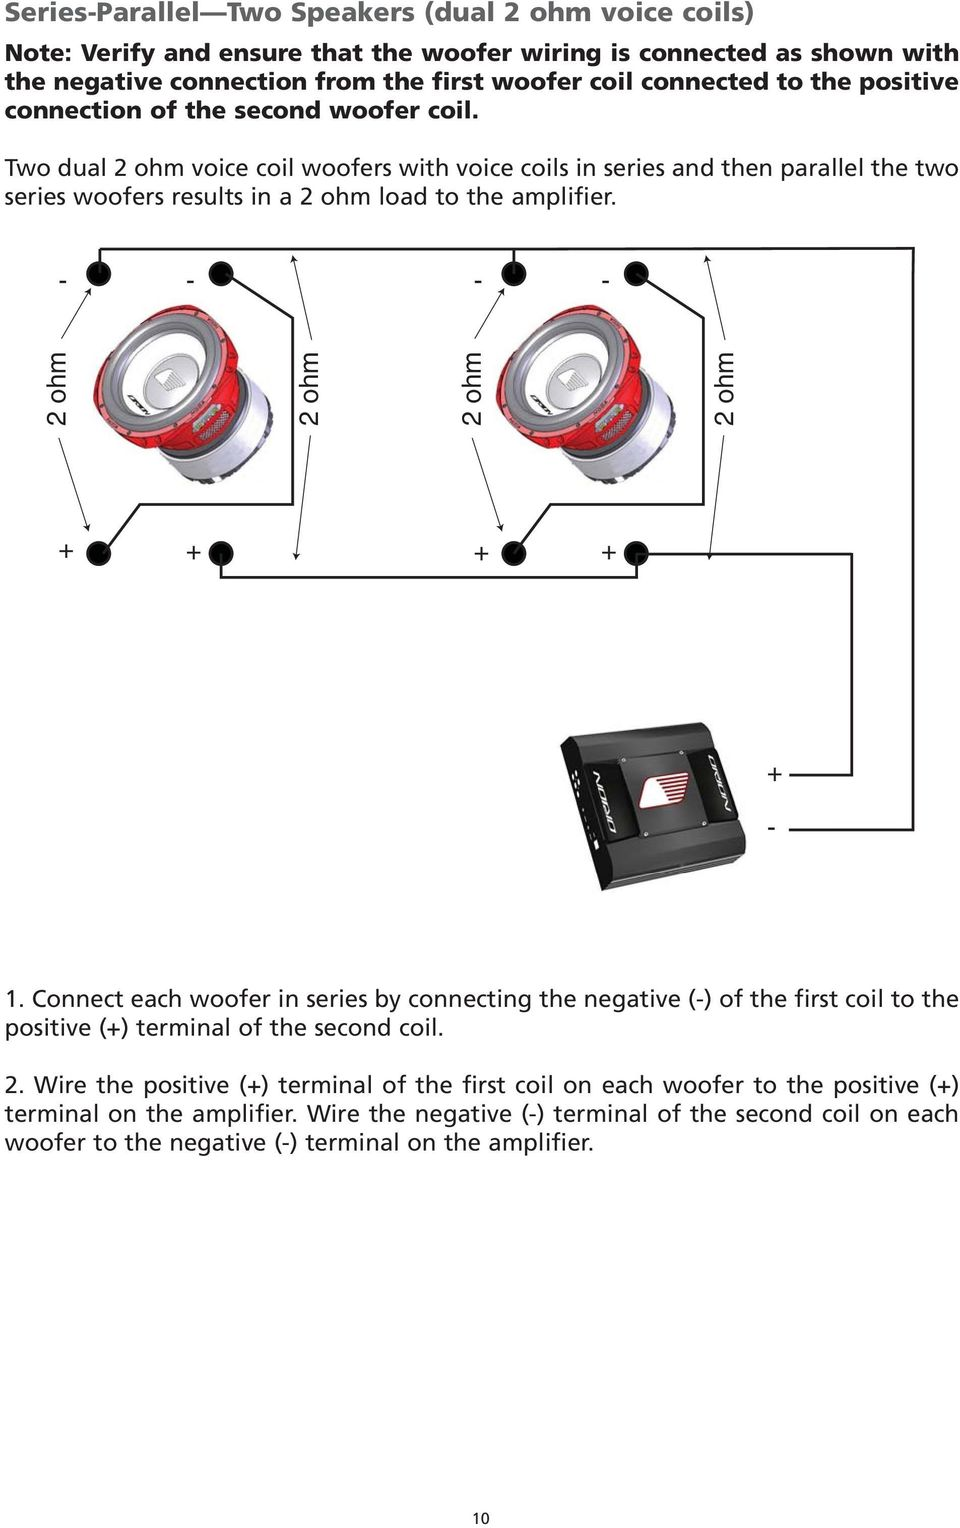 hight resolution of orion hcca 15 wiring diagram wiring diagram datasourcesubwoofer hcca pdf orion hcca 15 wiring diagram